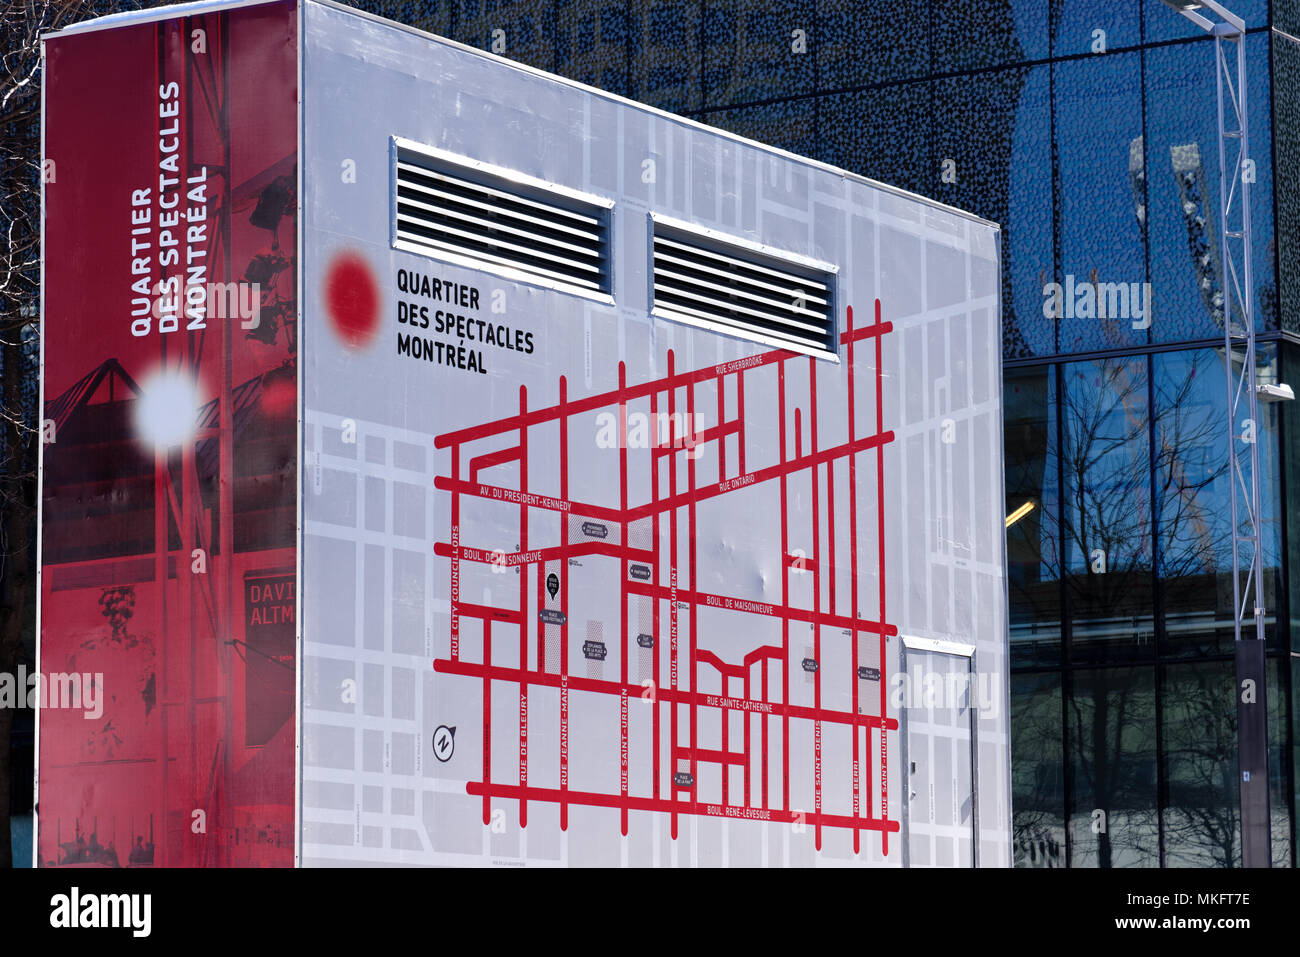 A map of Montreal's Quartier des Spectacles (entertainment district) painted on anaircon unit - Stock Image